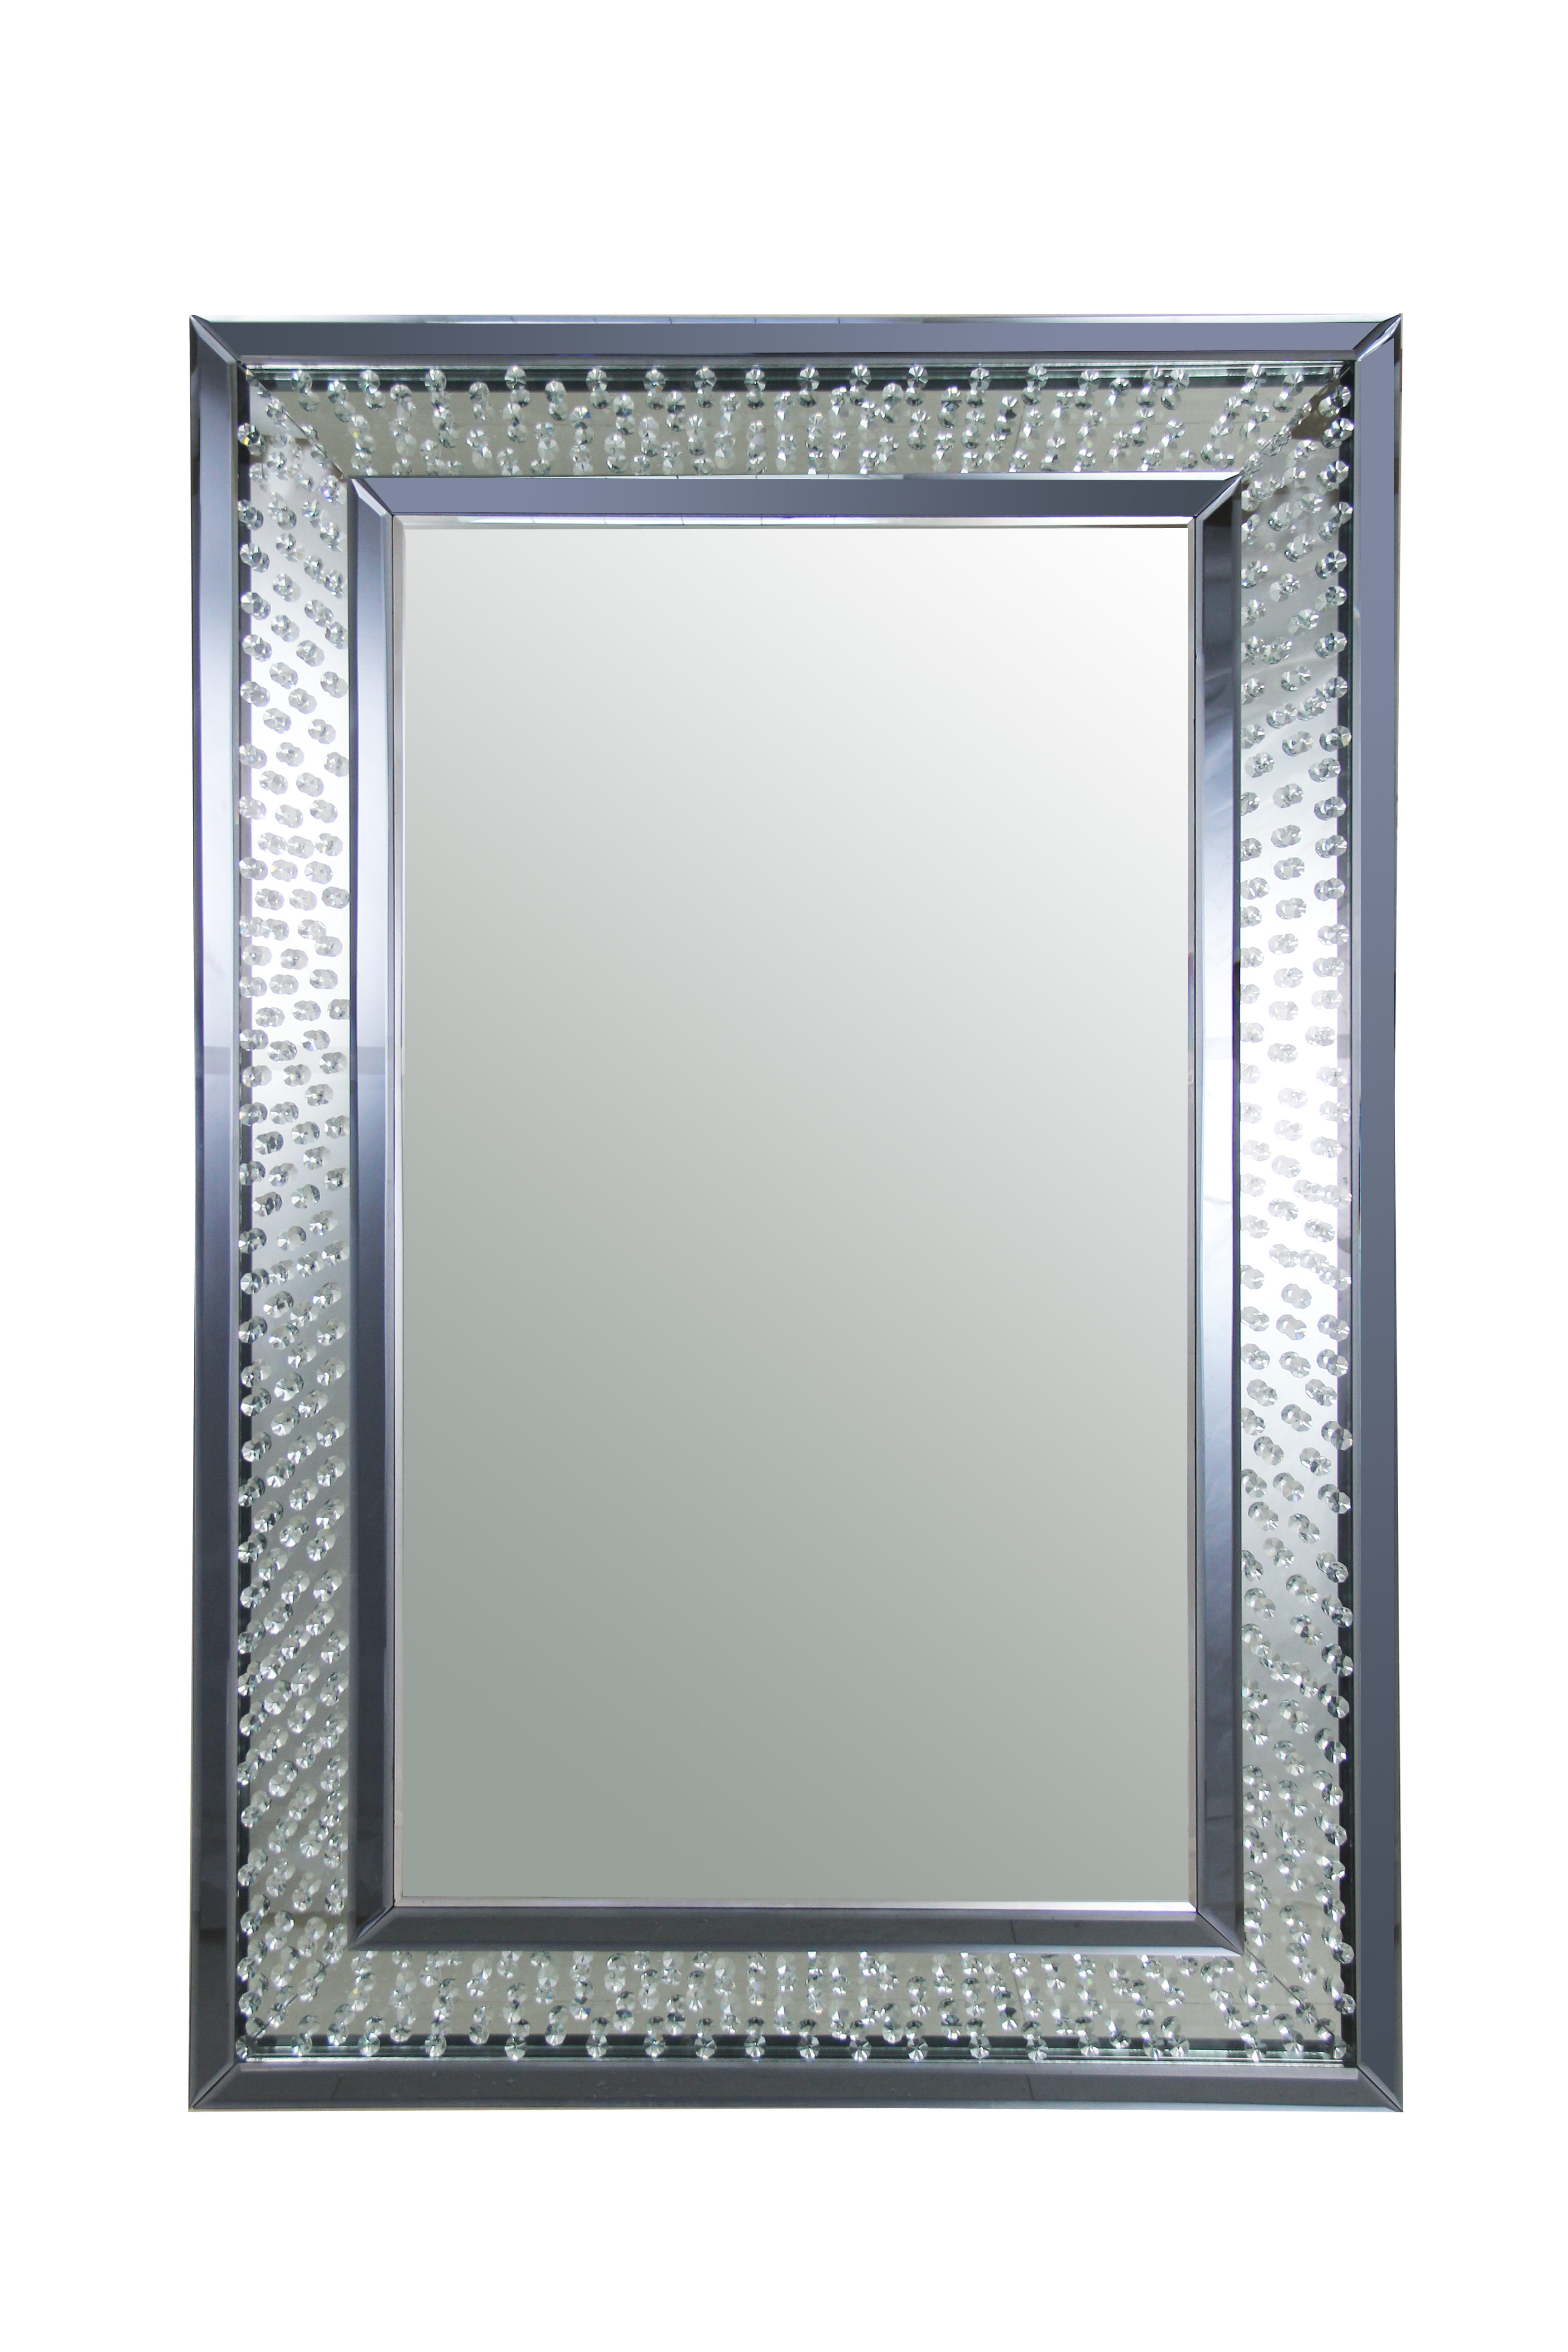 Acme Furniture Nysa Accent Wall Mirror Inside Accent Wall Mirrors (View 12 of 20)